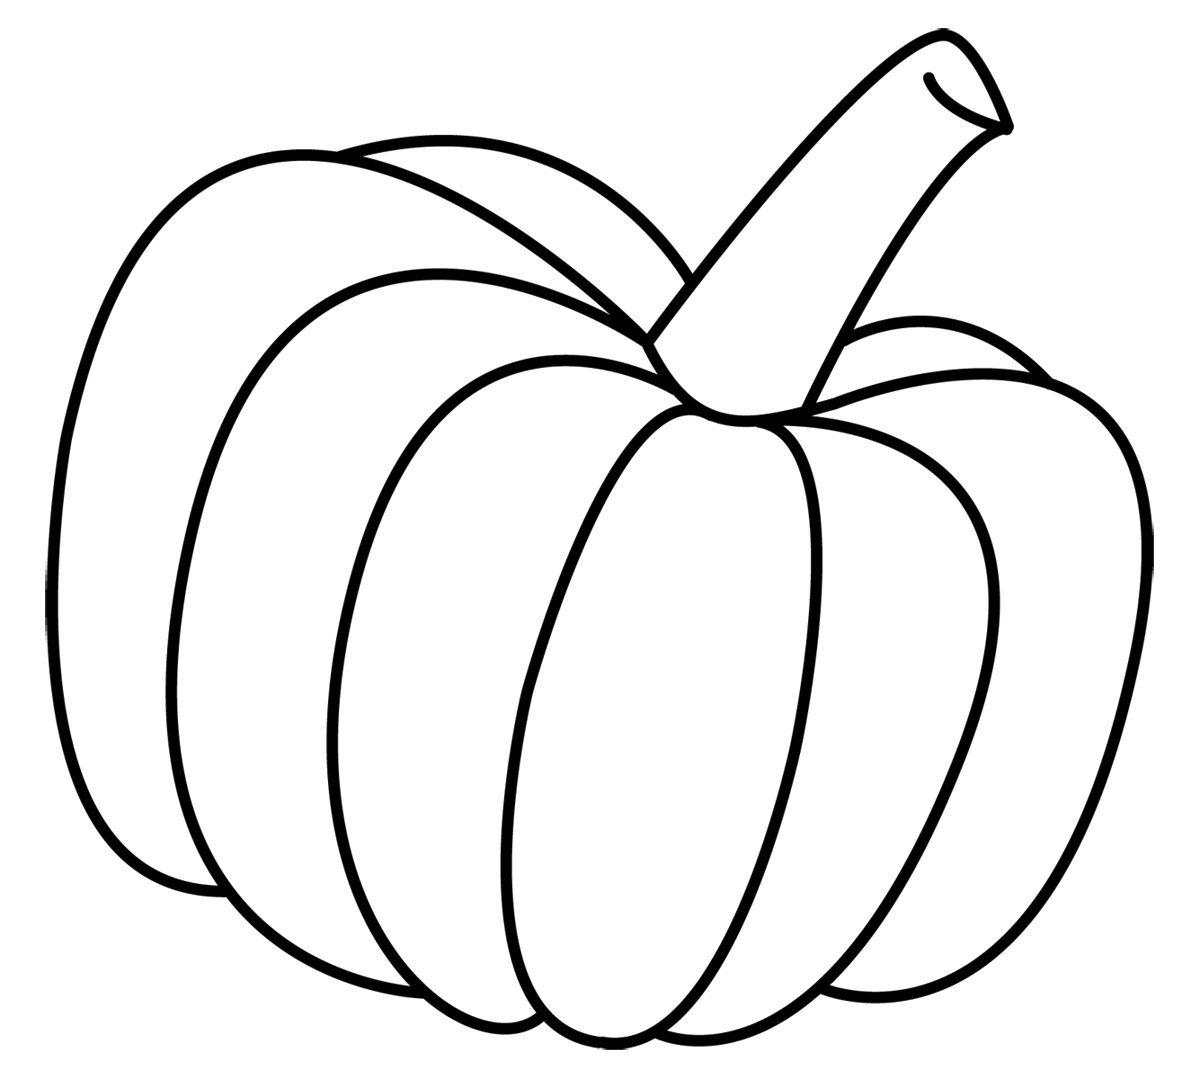 Pumpkin Clip Art Black White  - Clip Art Black And White